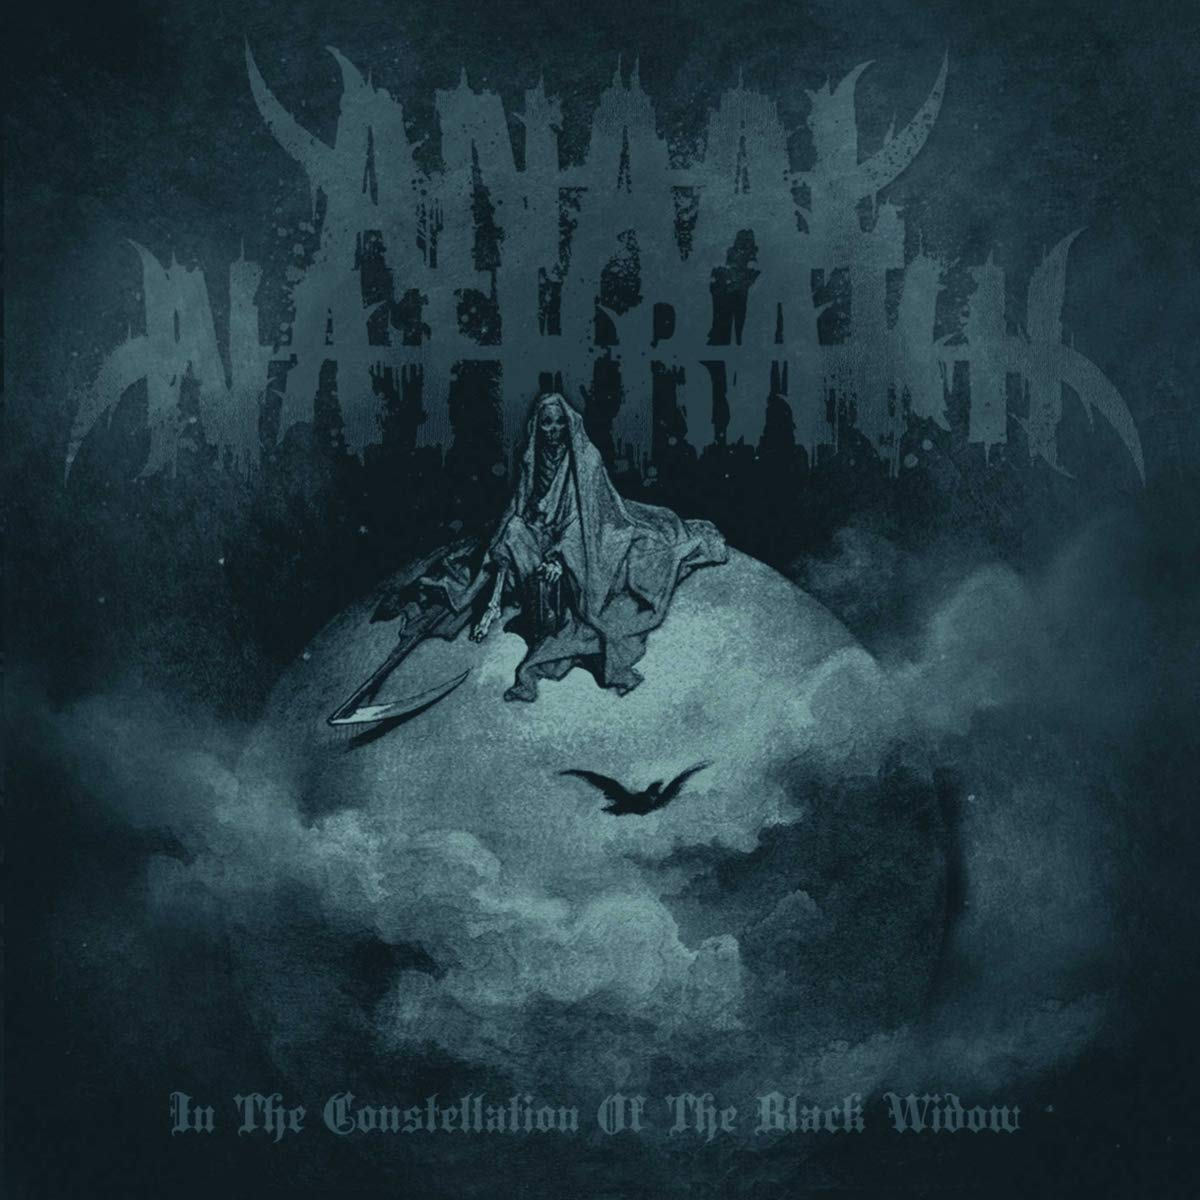 Anaal Nathrakh - In The Constellation Of The Black Widow [Grey w/ Green Marble LP]